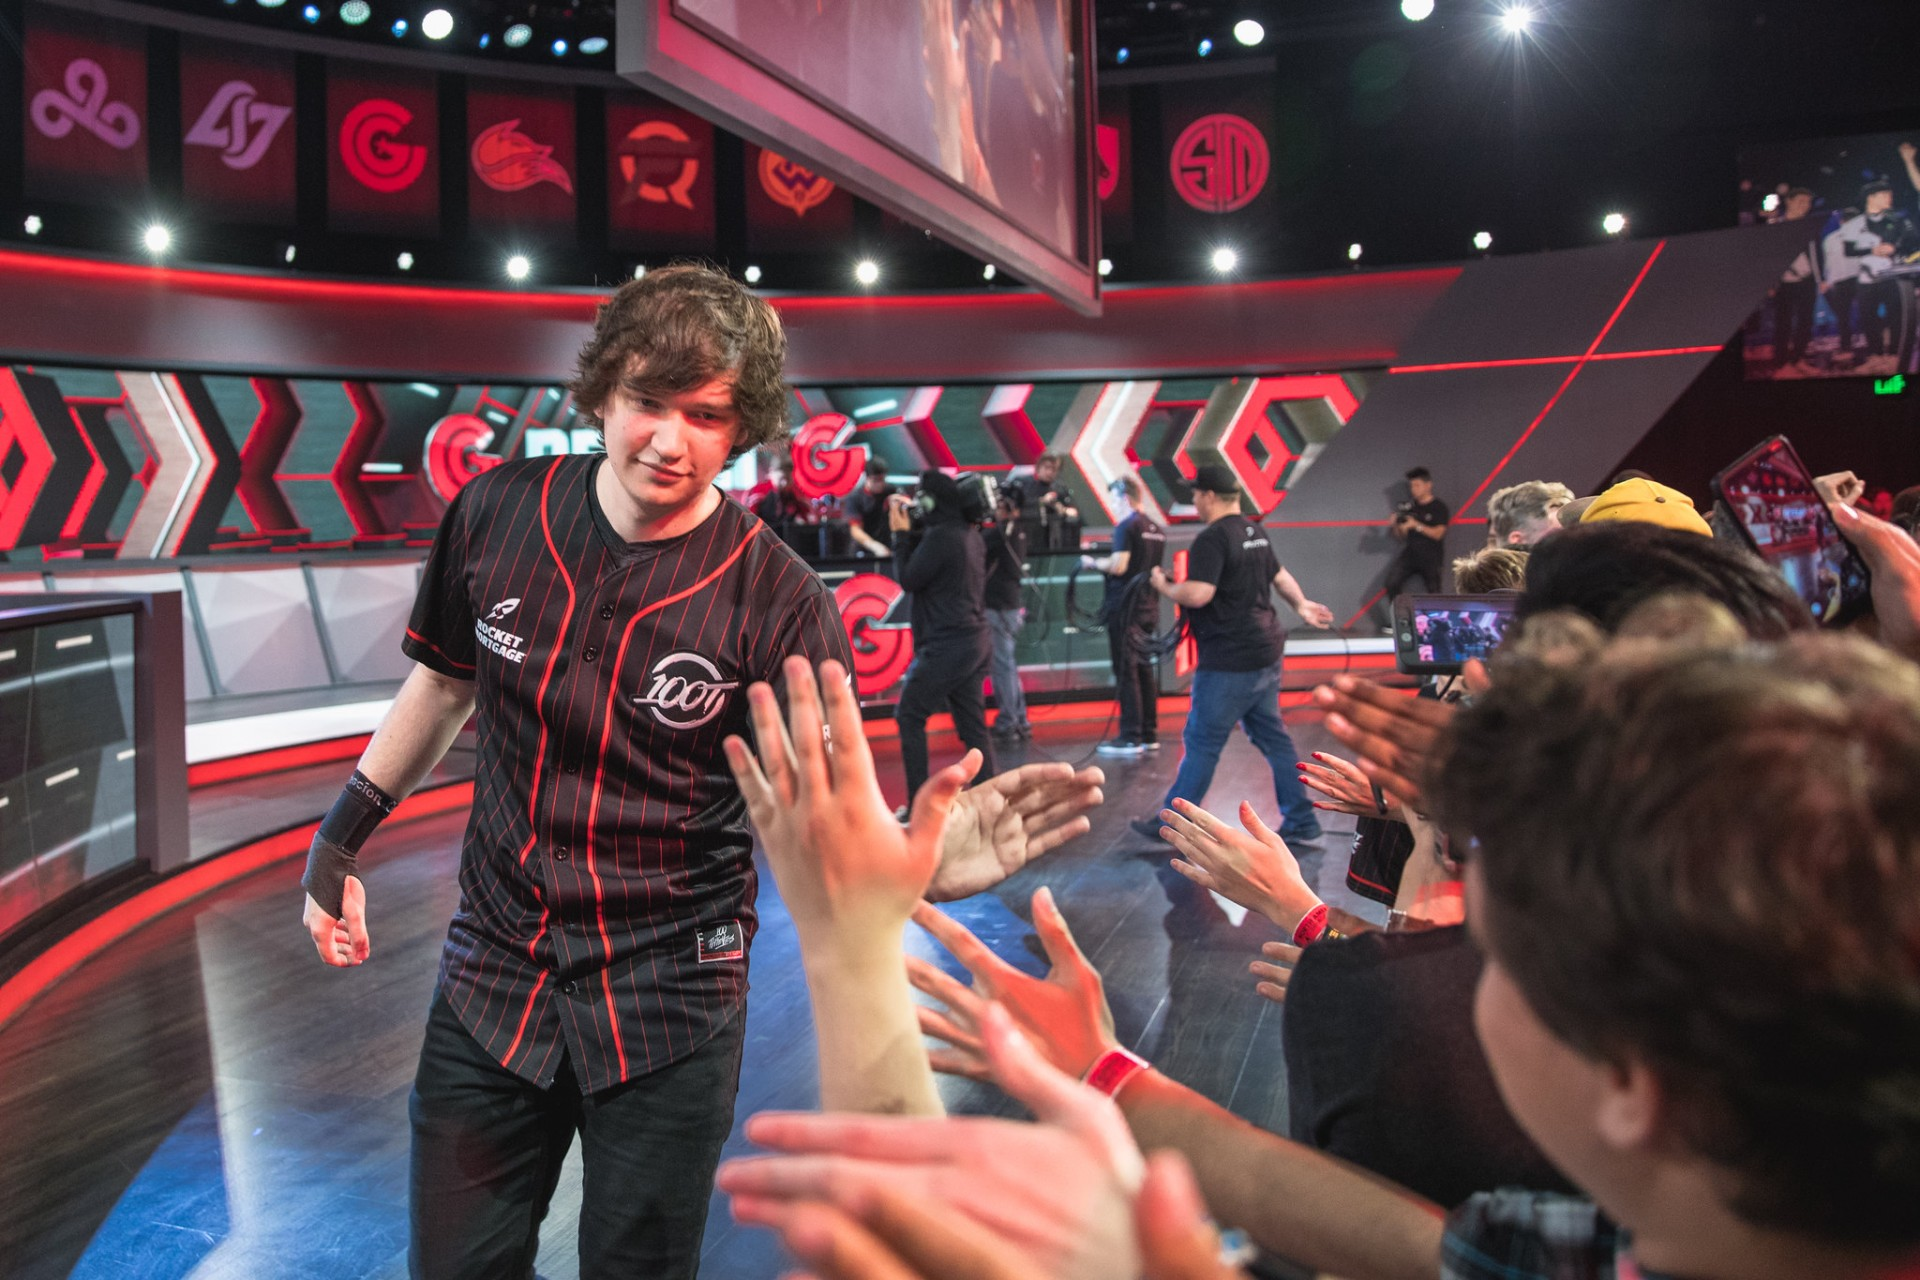 Meteos playing for 100 Thieves in the LCS in 2018